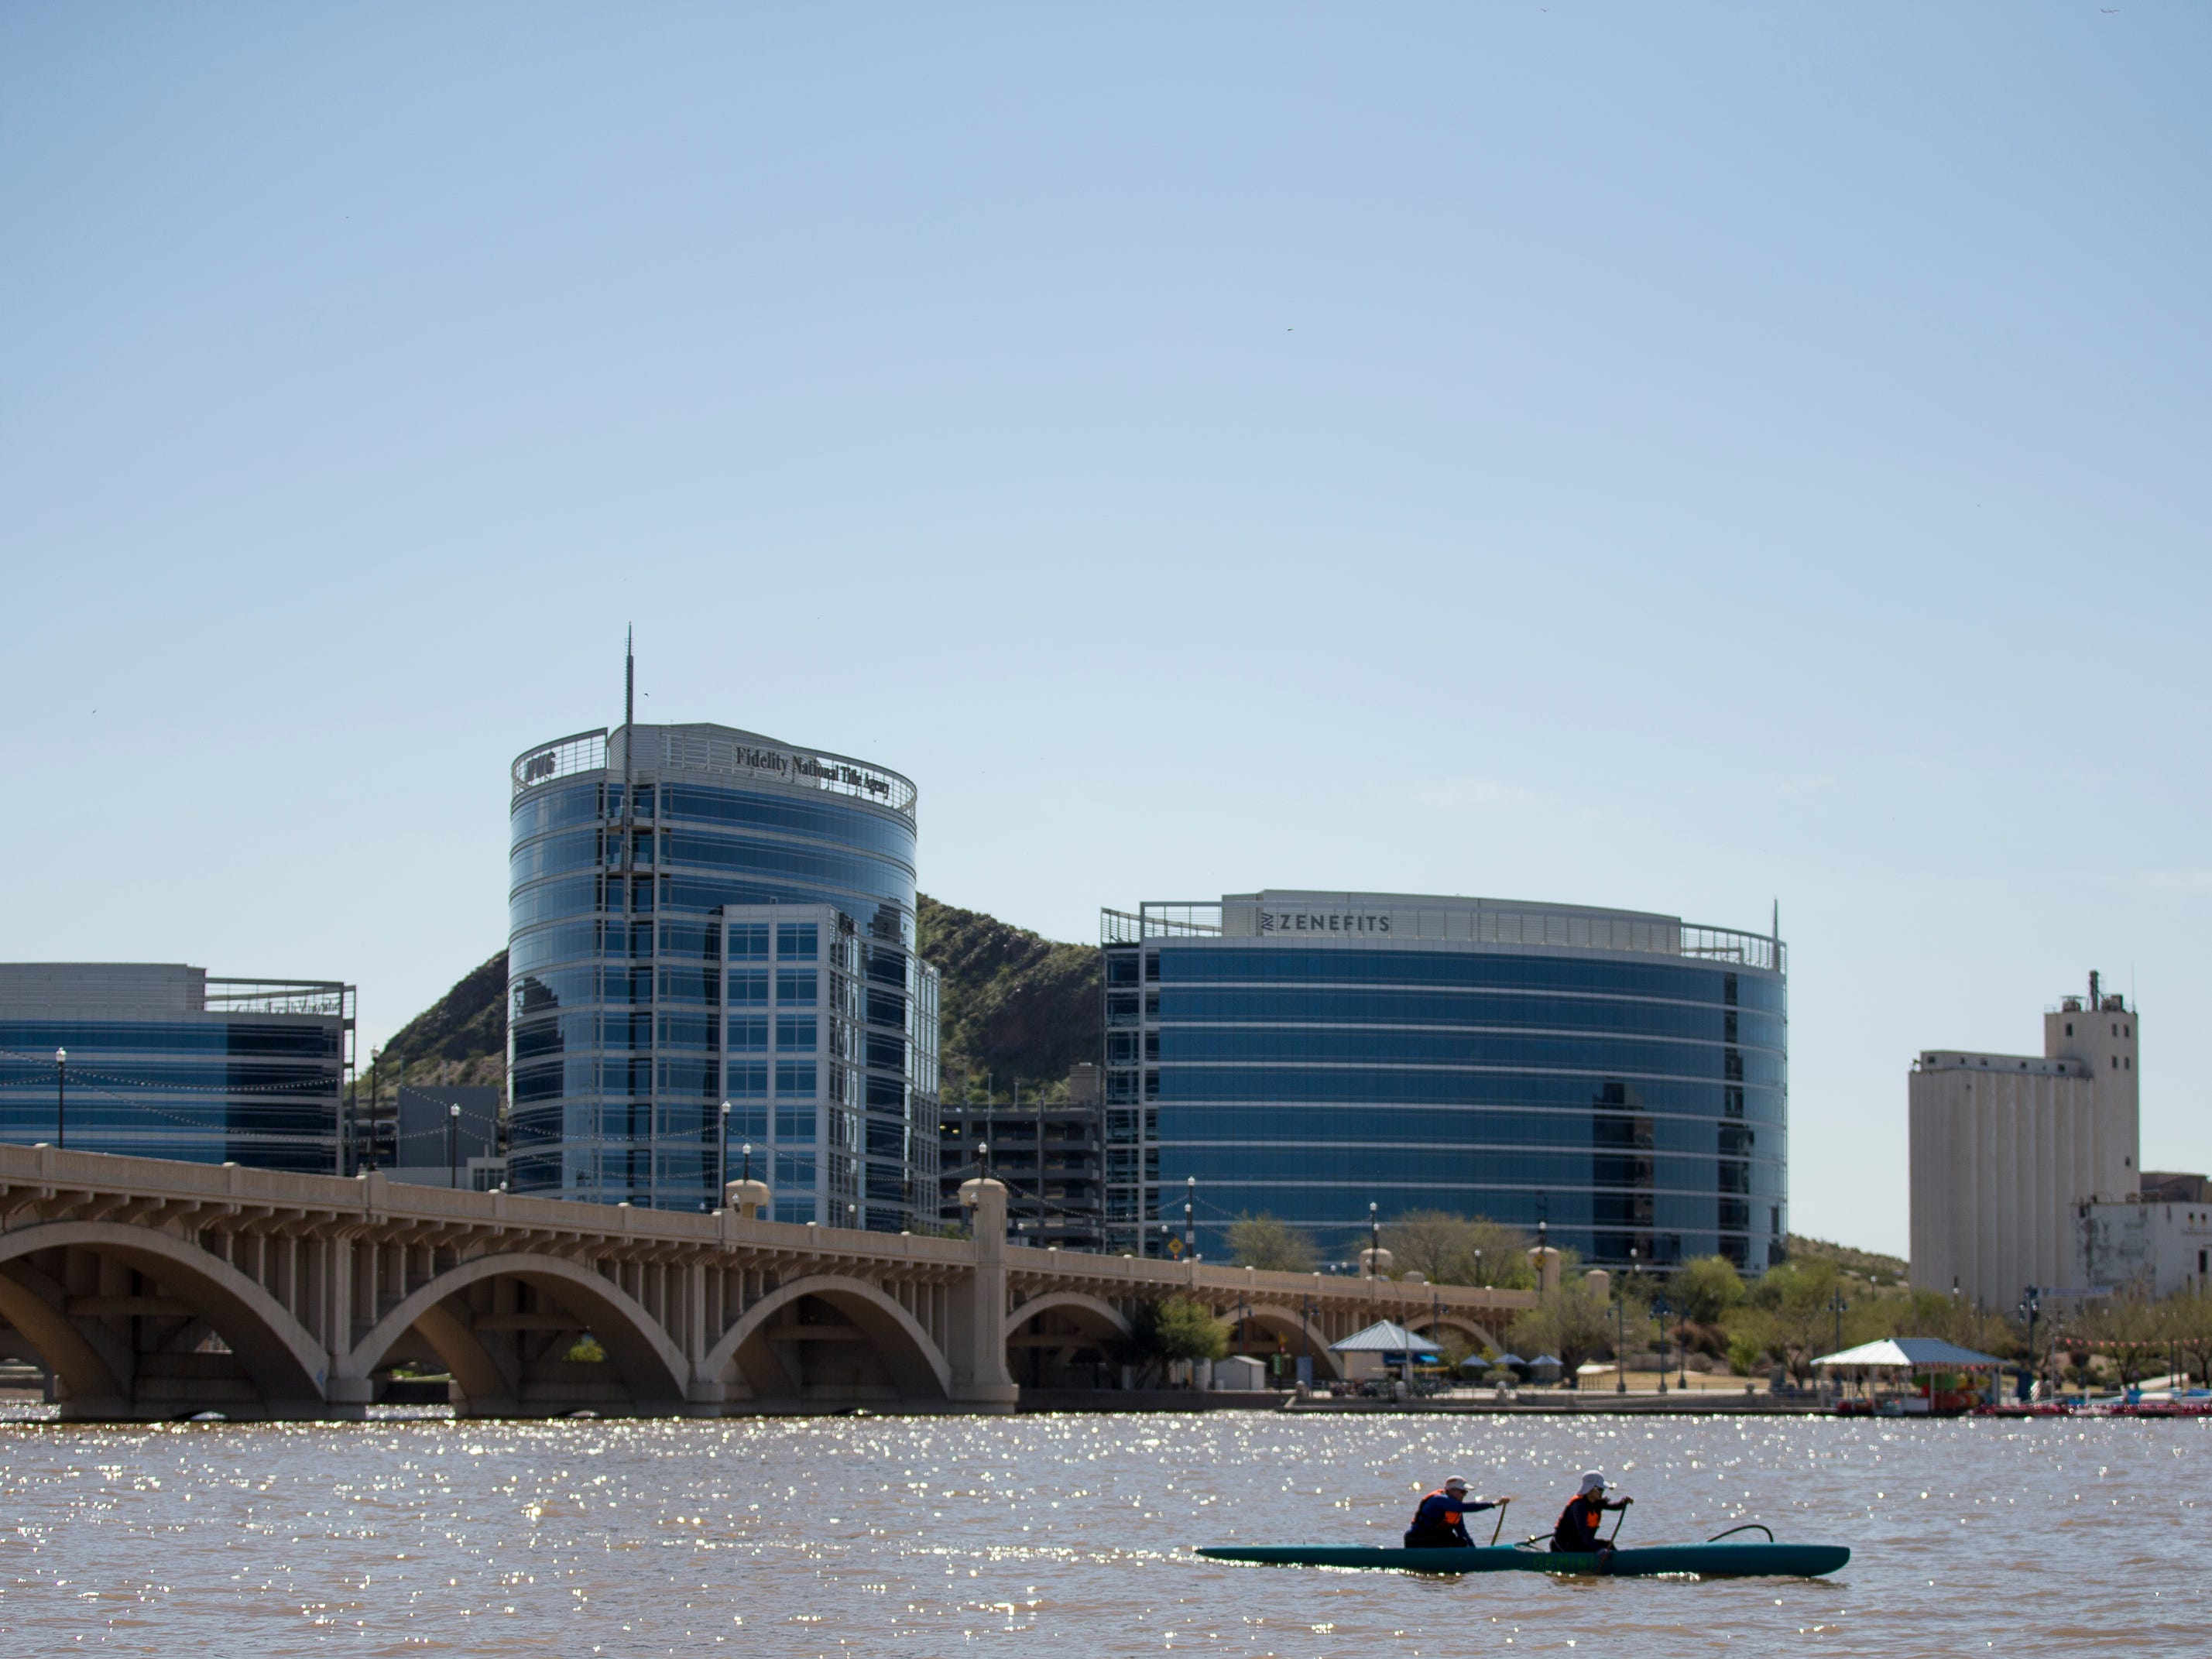 Phoenix just misses 100 degrees; sunny skies, warm temperatures expected through Easter